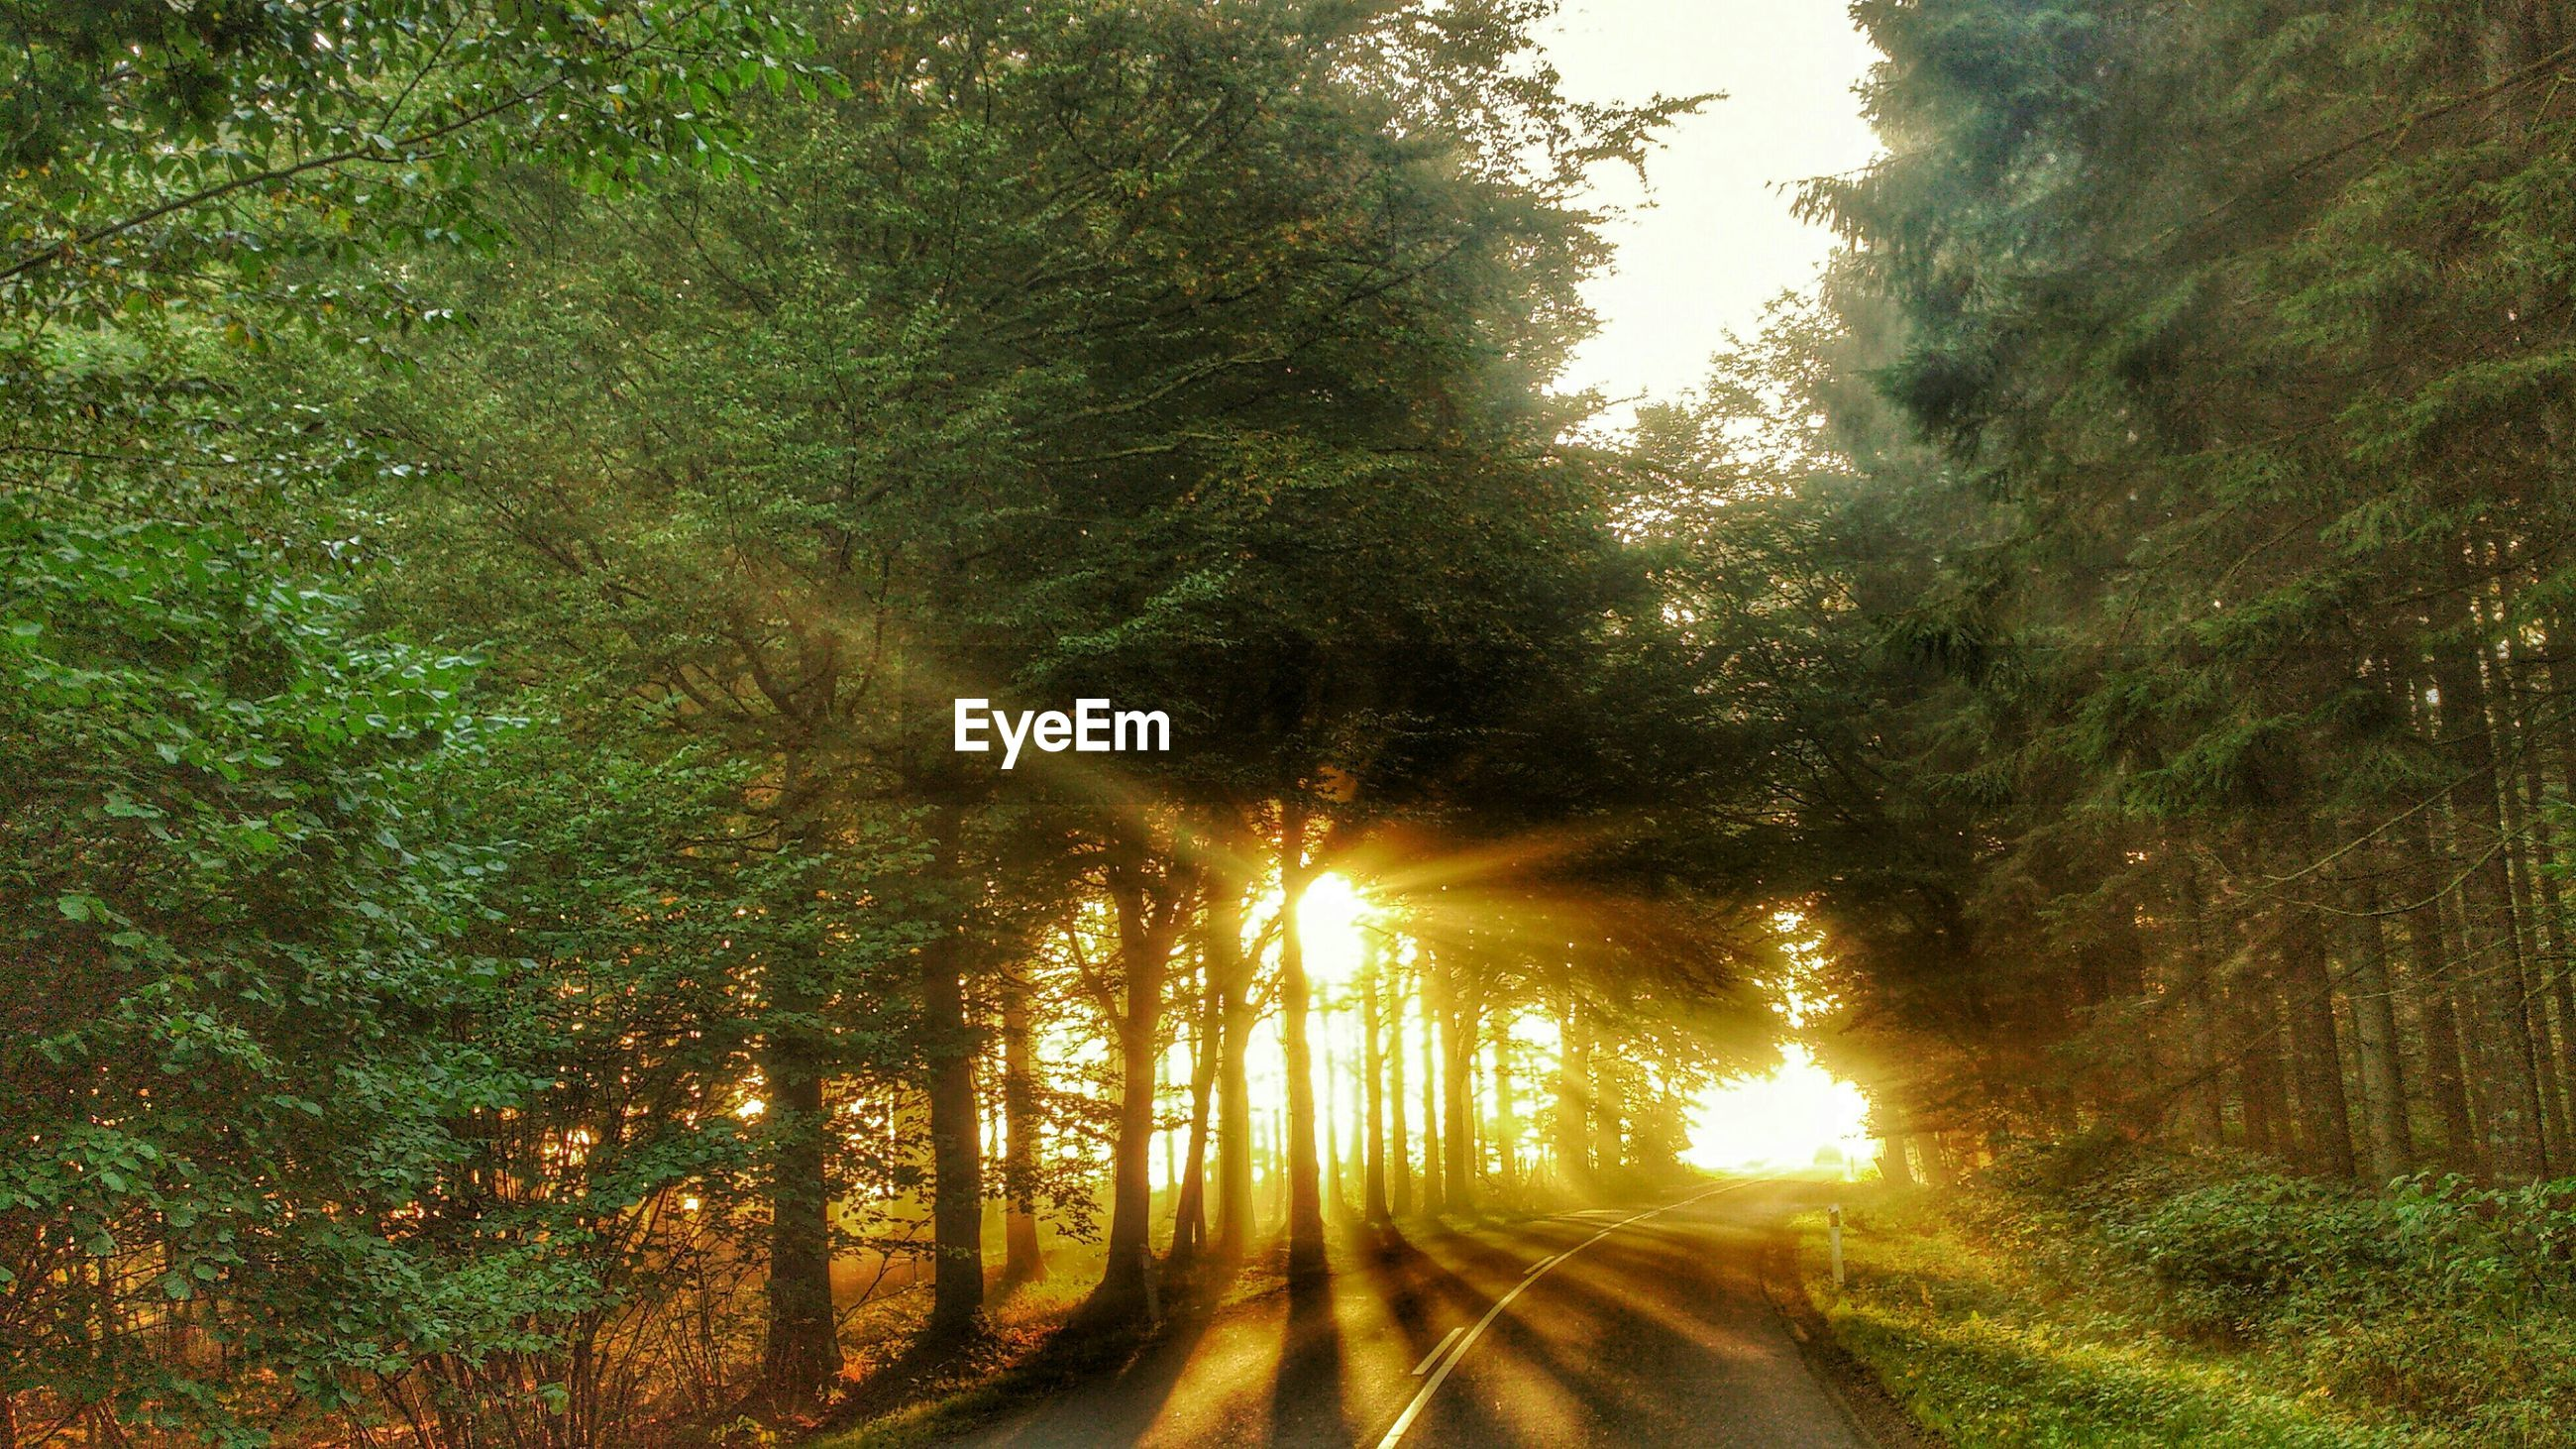 tree, sun, sunlight, the way forward, tranquility, sunbeam, growth, lens flare, tranquil scene, nature, beauty in nature, scenics, diminishing perspective, sunset, vanishing point, footpath, outdoors, grass, sunny, idyllic